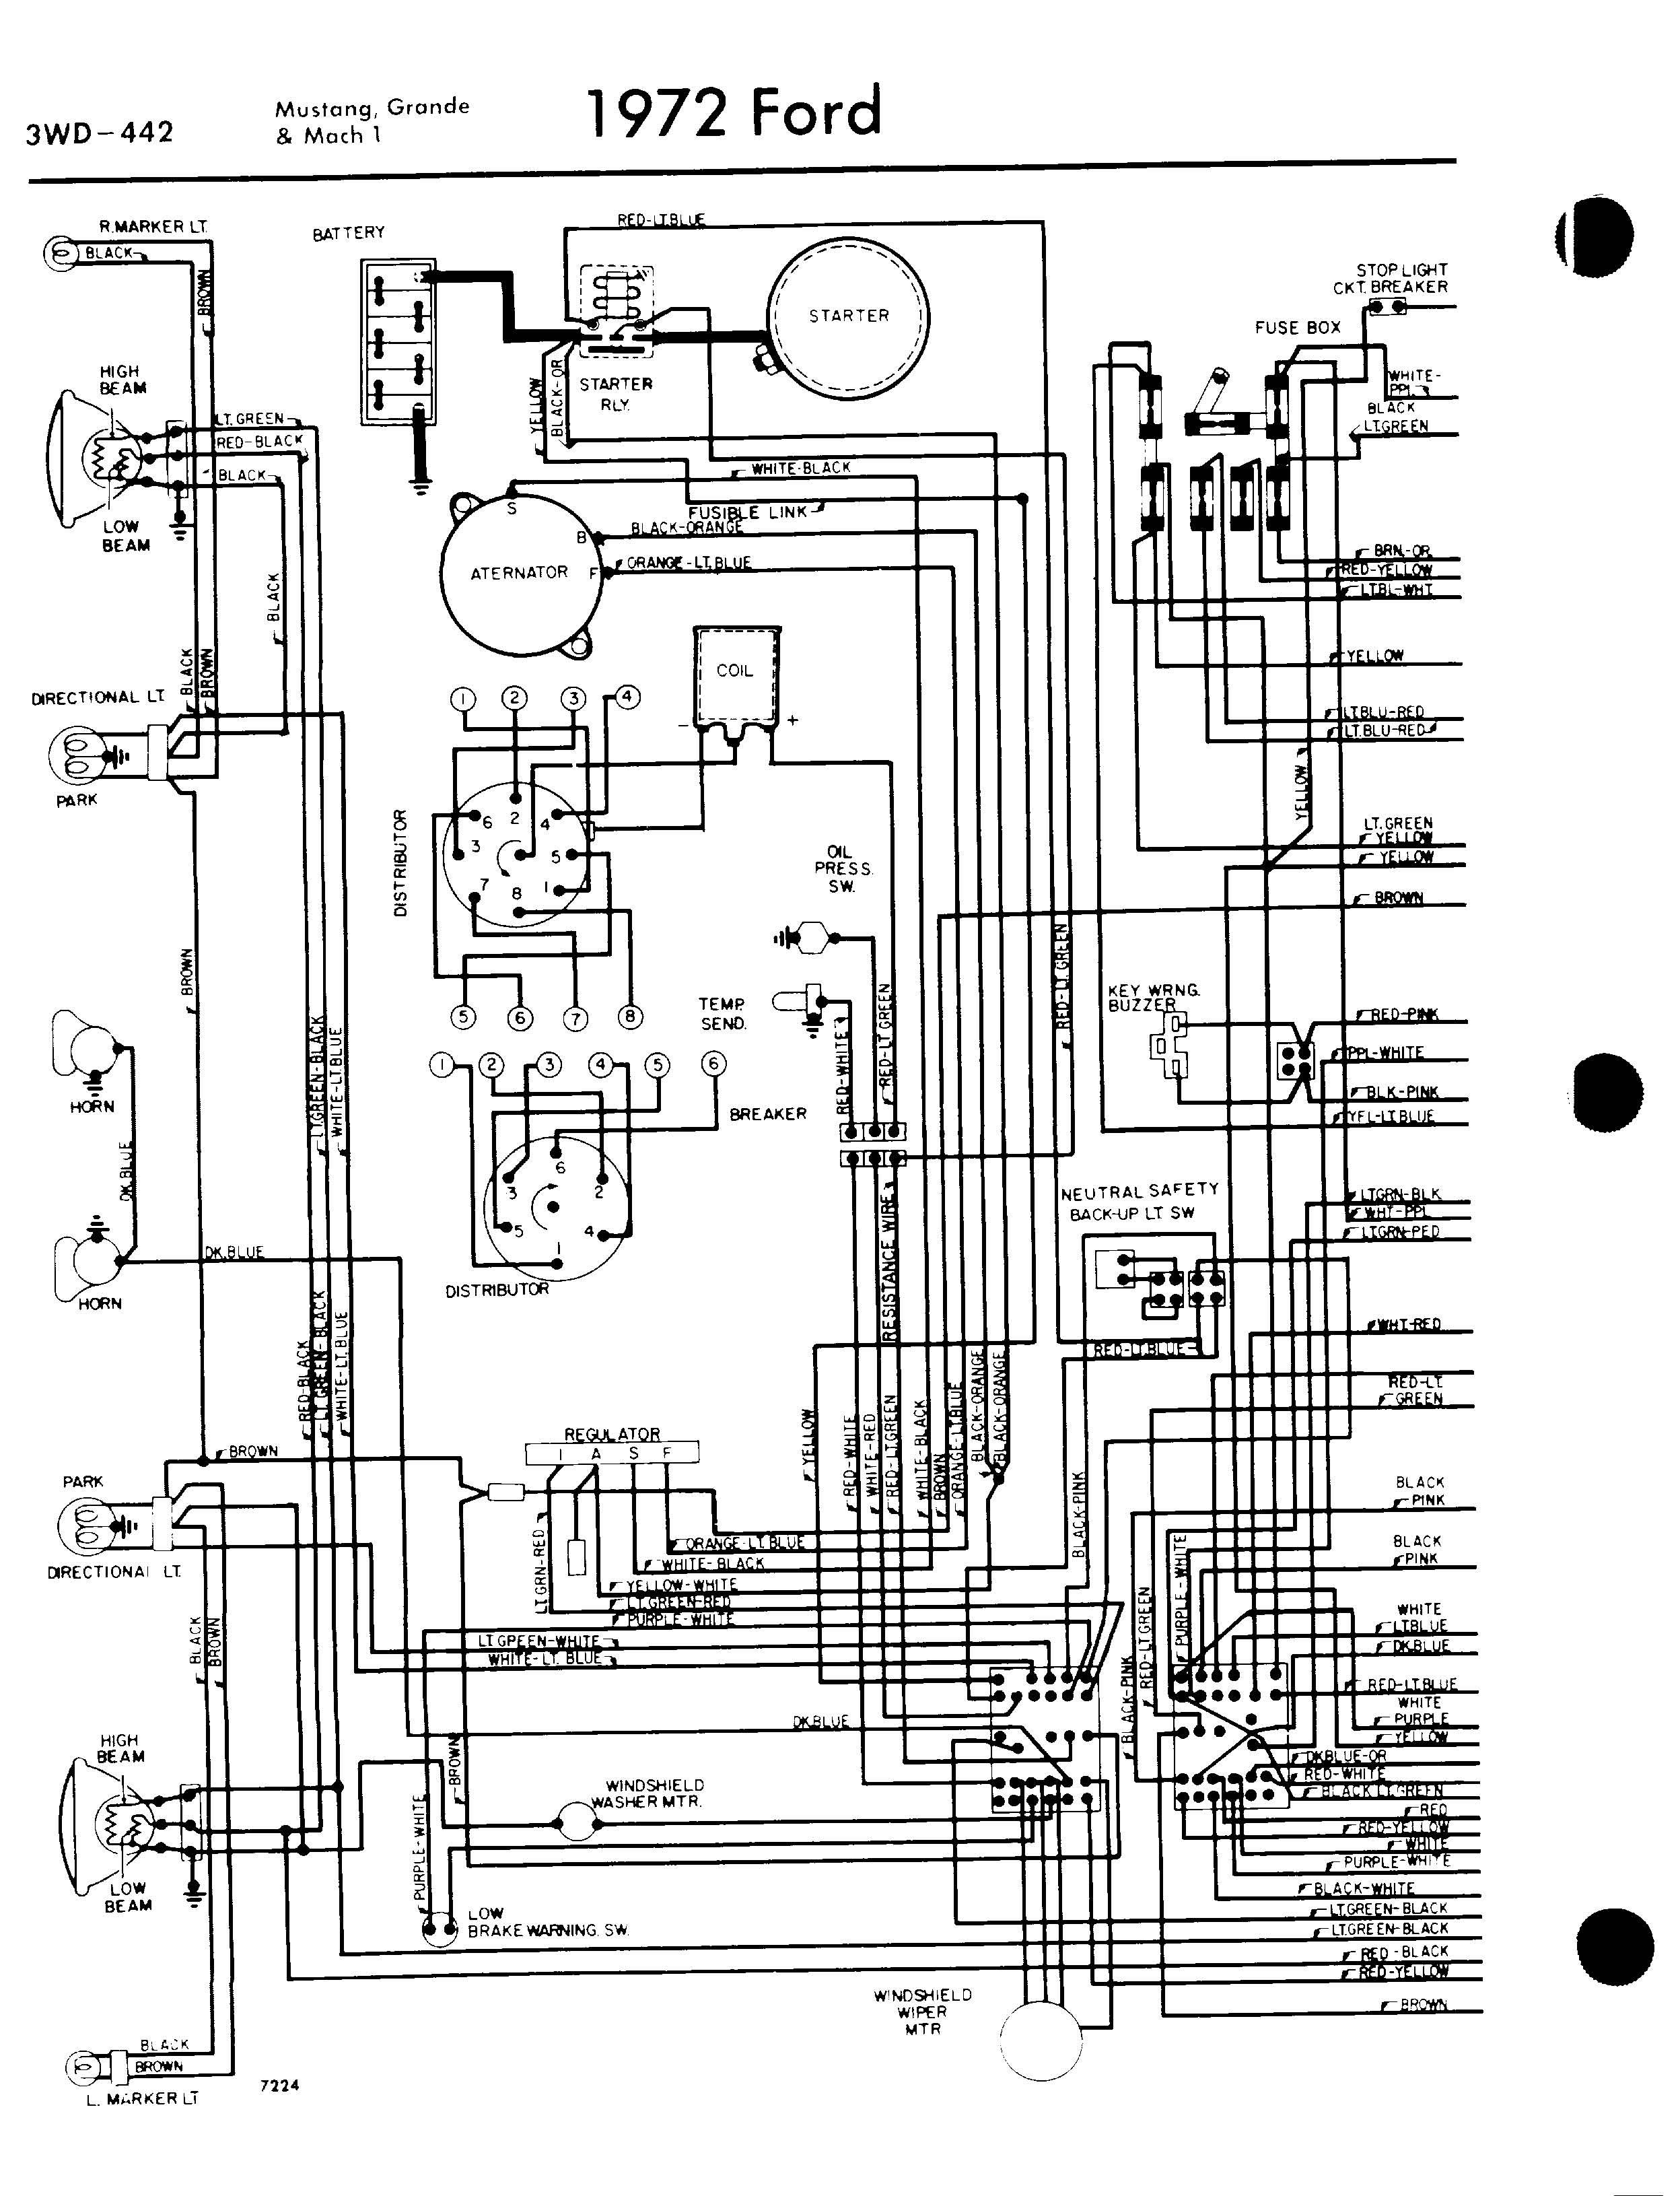 71af7a58e095e6a7716b32f1b23e8bd2 72 mach1 alternator wire harness diagram yahoo search results 1969 mustang alternator wiring diagram at eliteediting.co